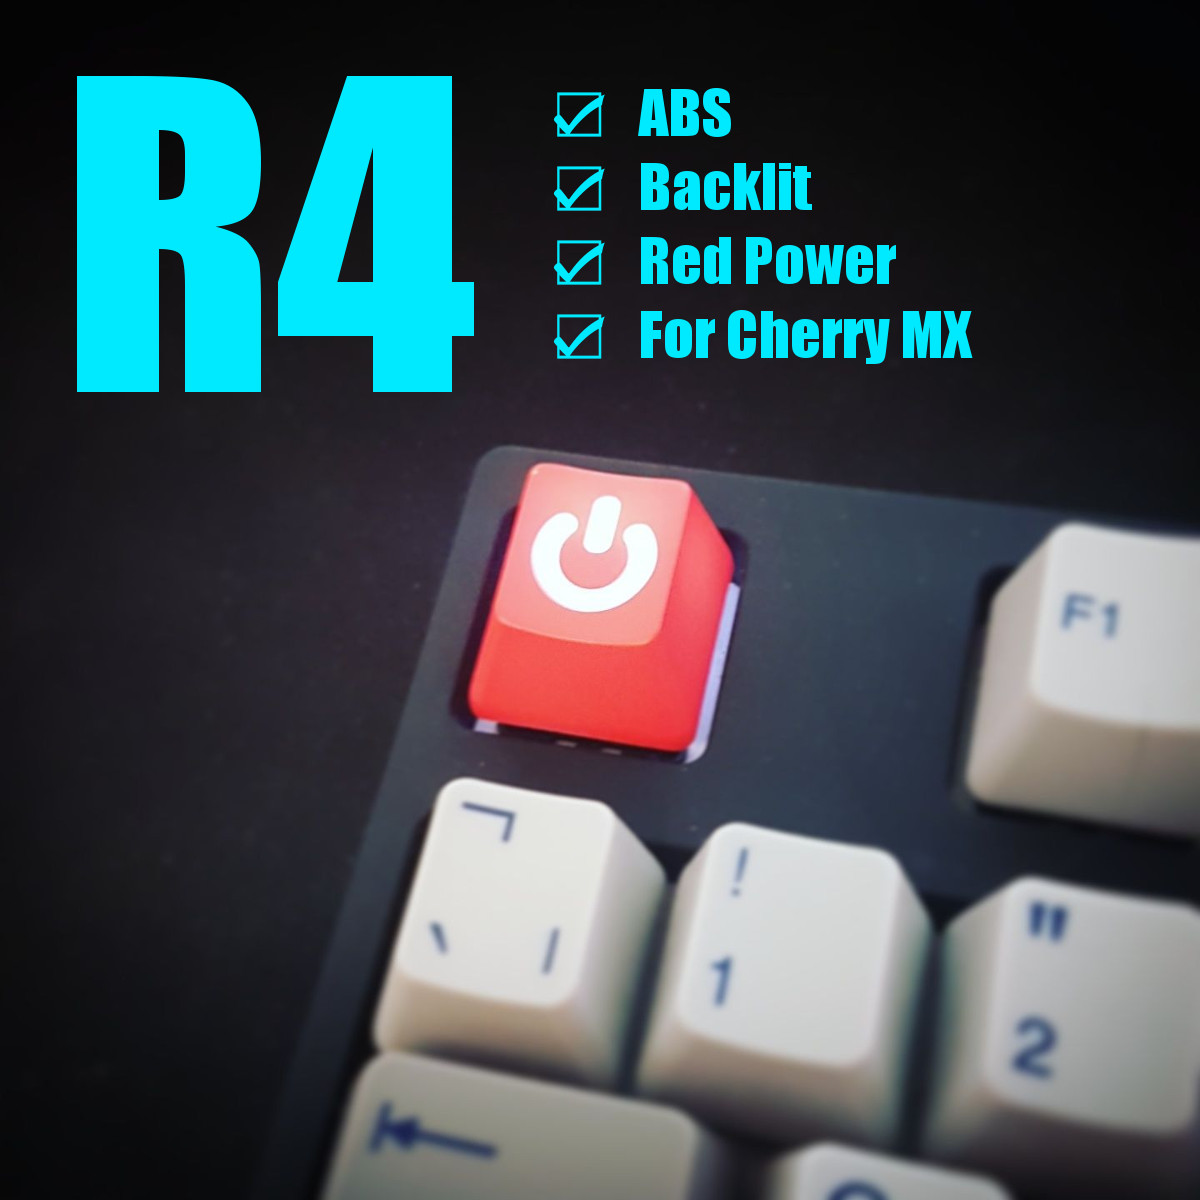 Red Power ESC R4 ABS Translucent Backlit Keycap Key Caps for Mechanical Gaming Keyboard